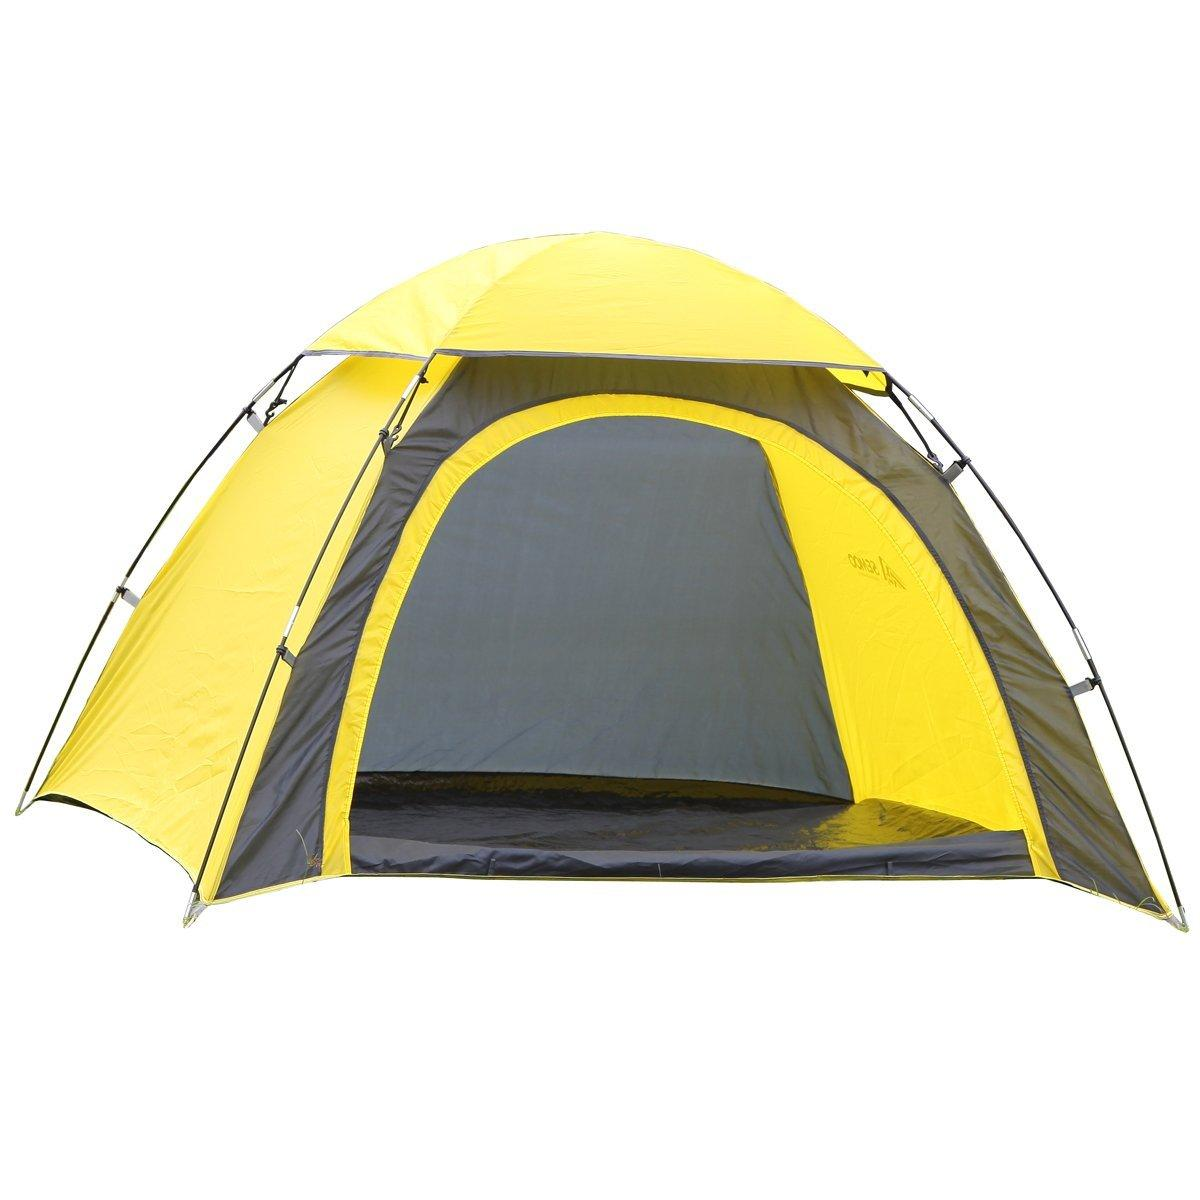 $29.99 Semoo Half-Moon Style Door, 3-Person Lightweight Camping/Traveling Family Dome Tent with Compression Bag